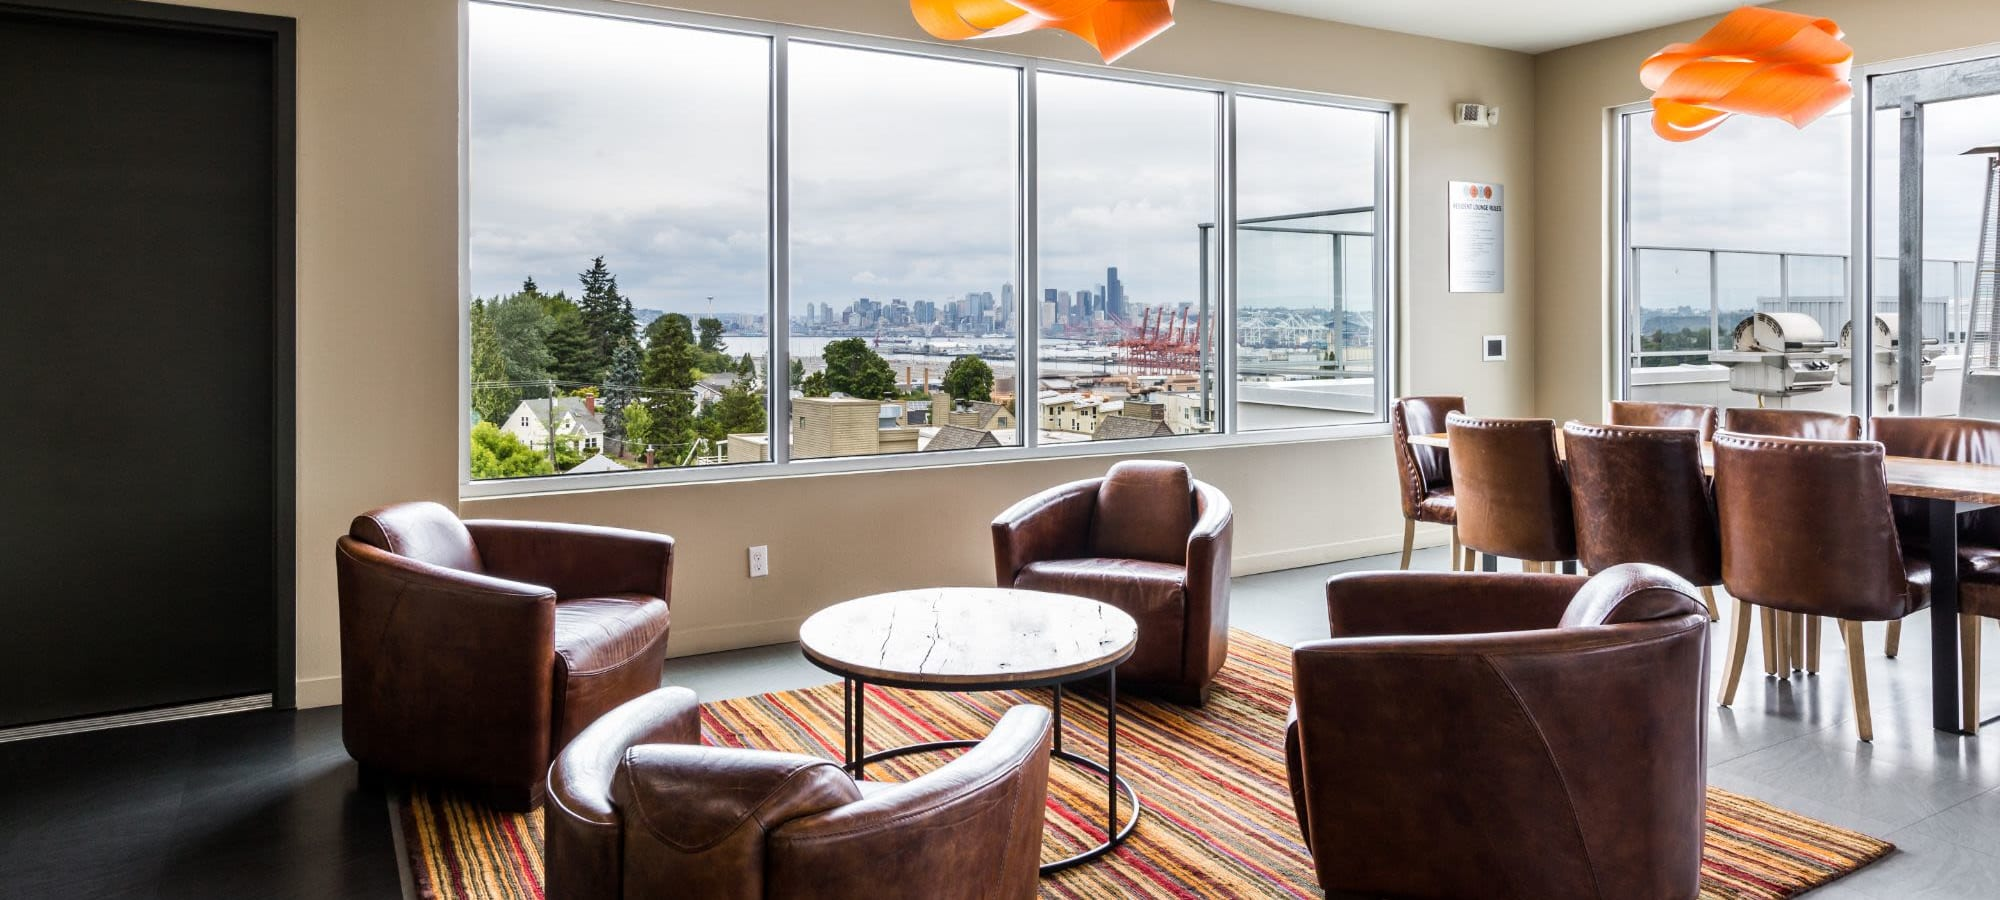 Resident information for Marq West Seattle in Seattle, Washington